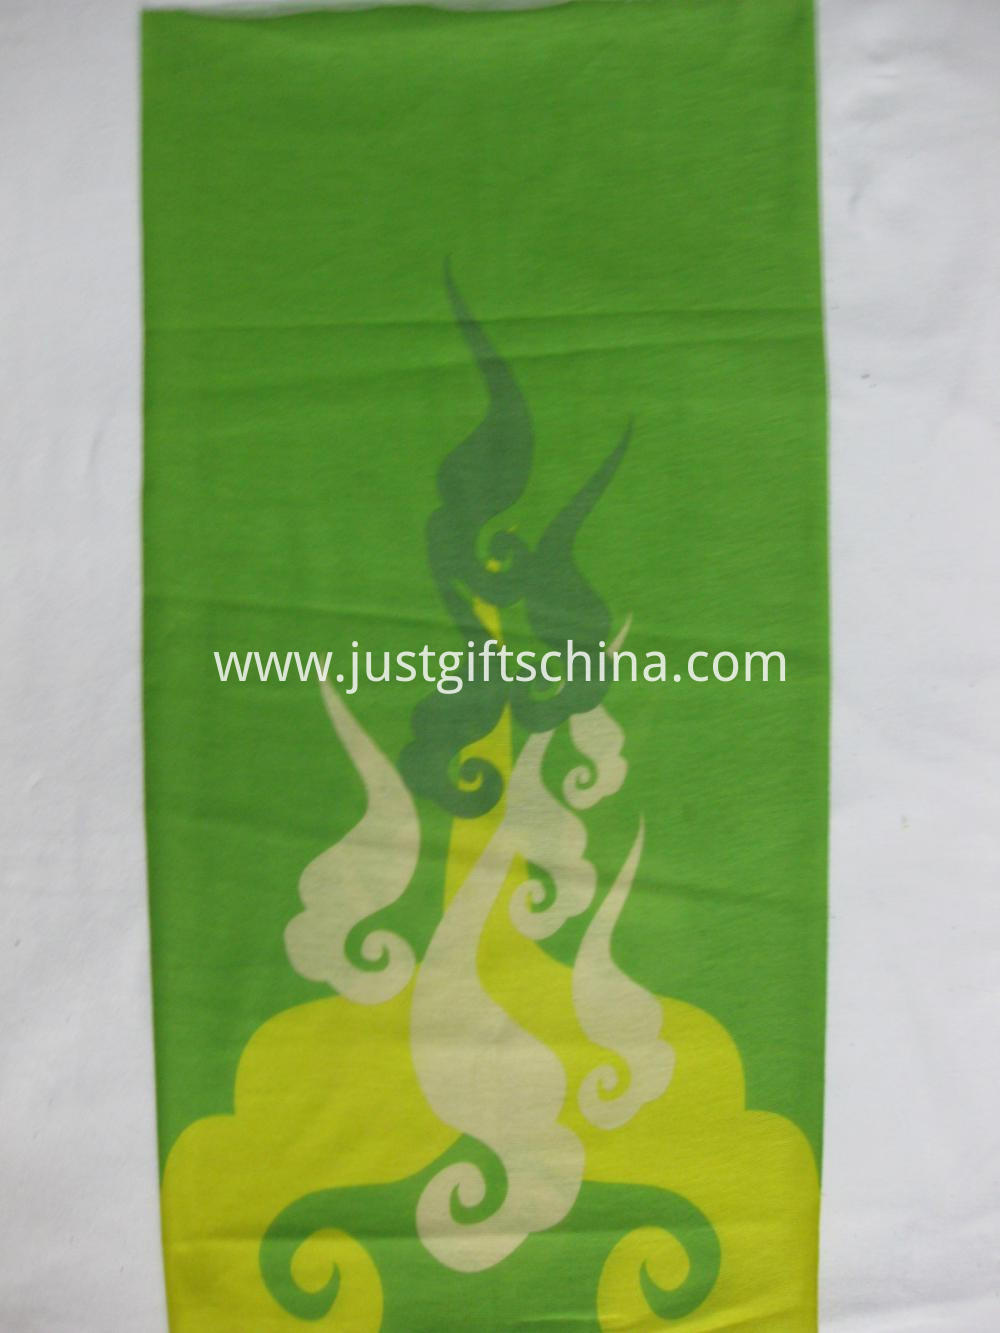 Custom Full Color Printed Polyester Bandanas - Green (2)